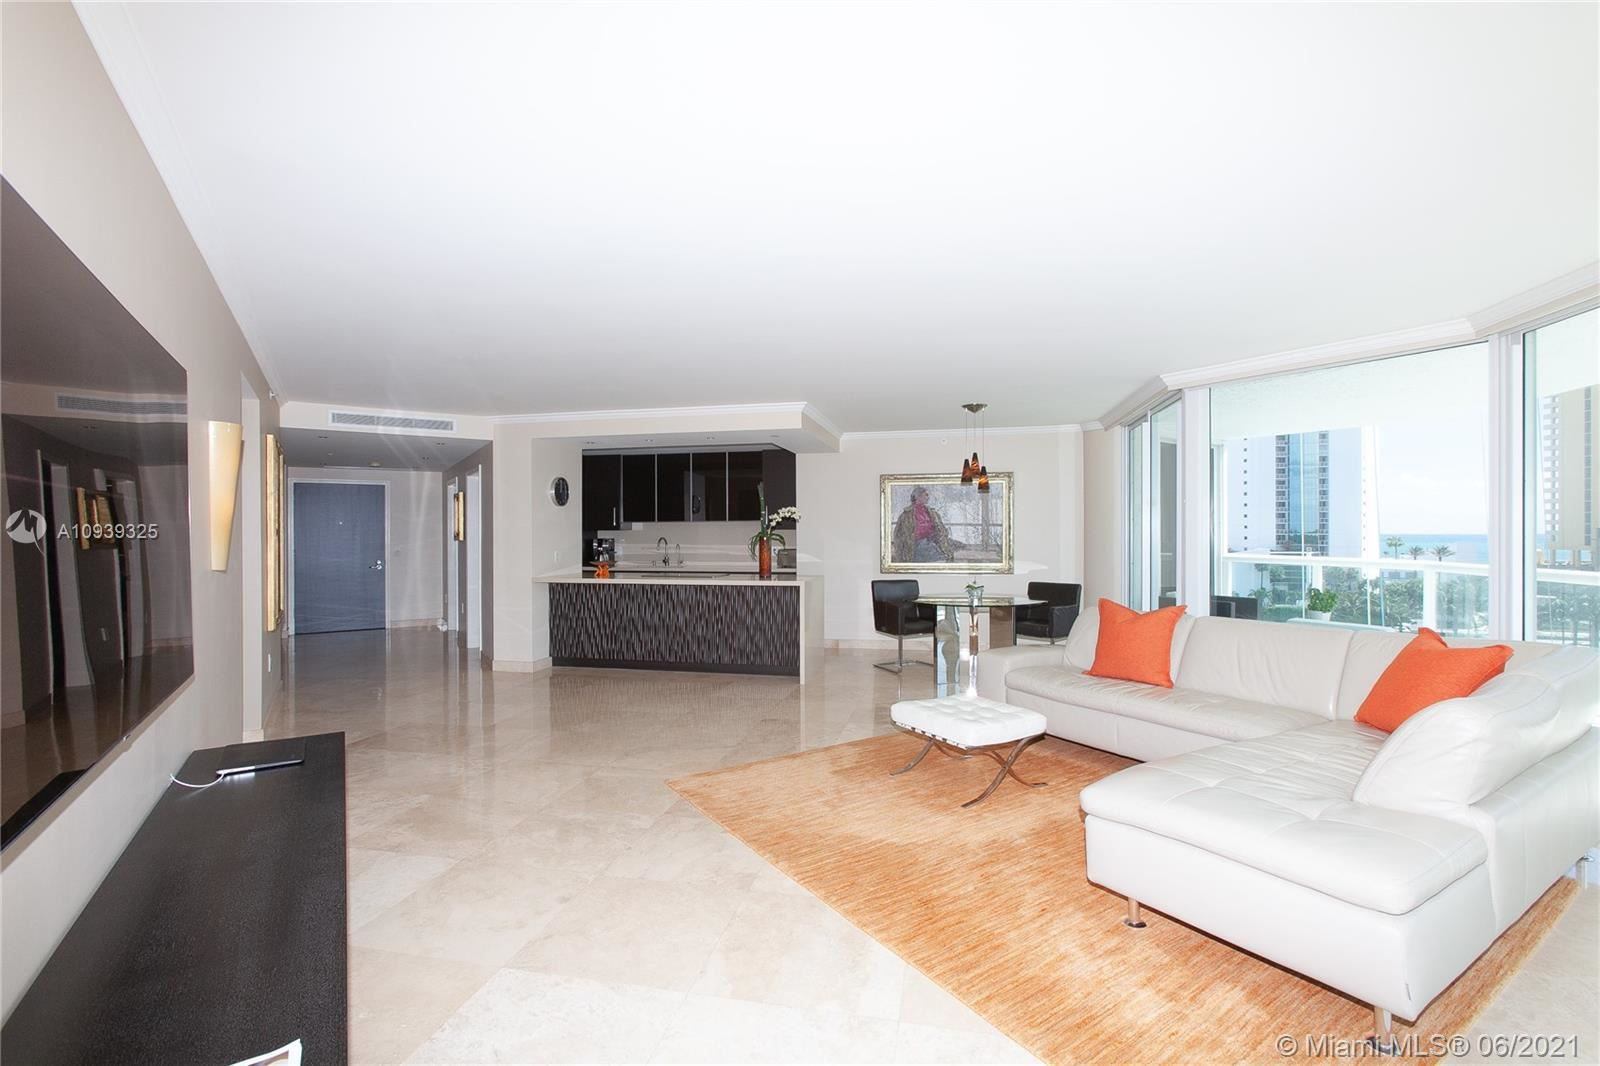 16400 Collins Ave #644, Sunny Isles, FL 33160 - #: A10939325